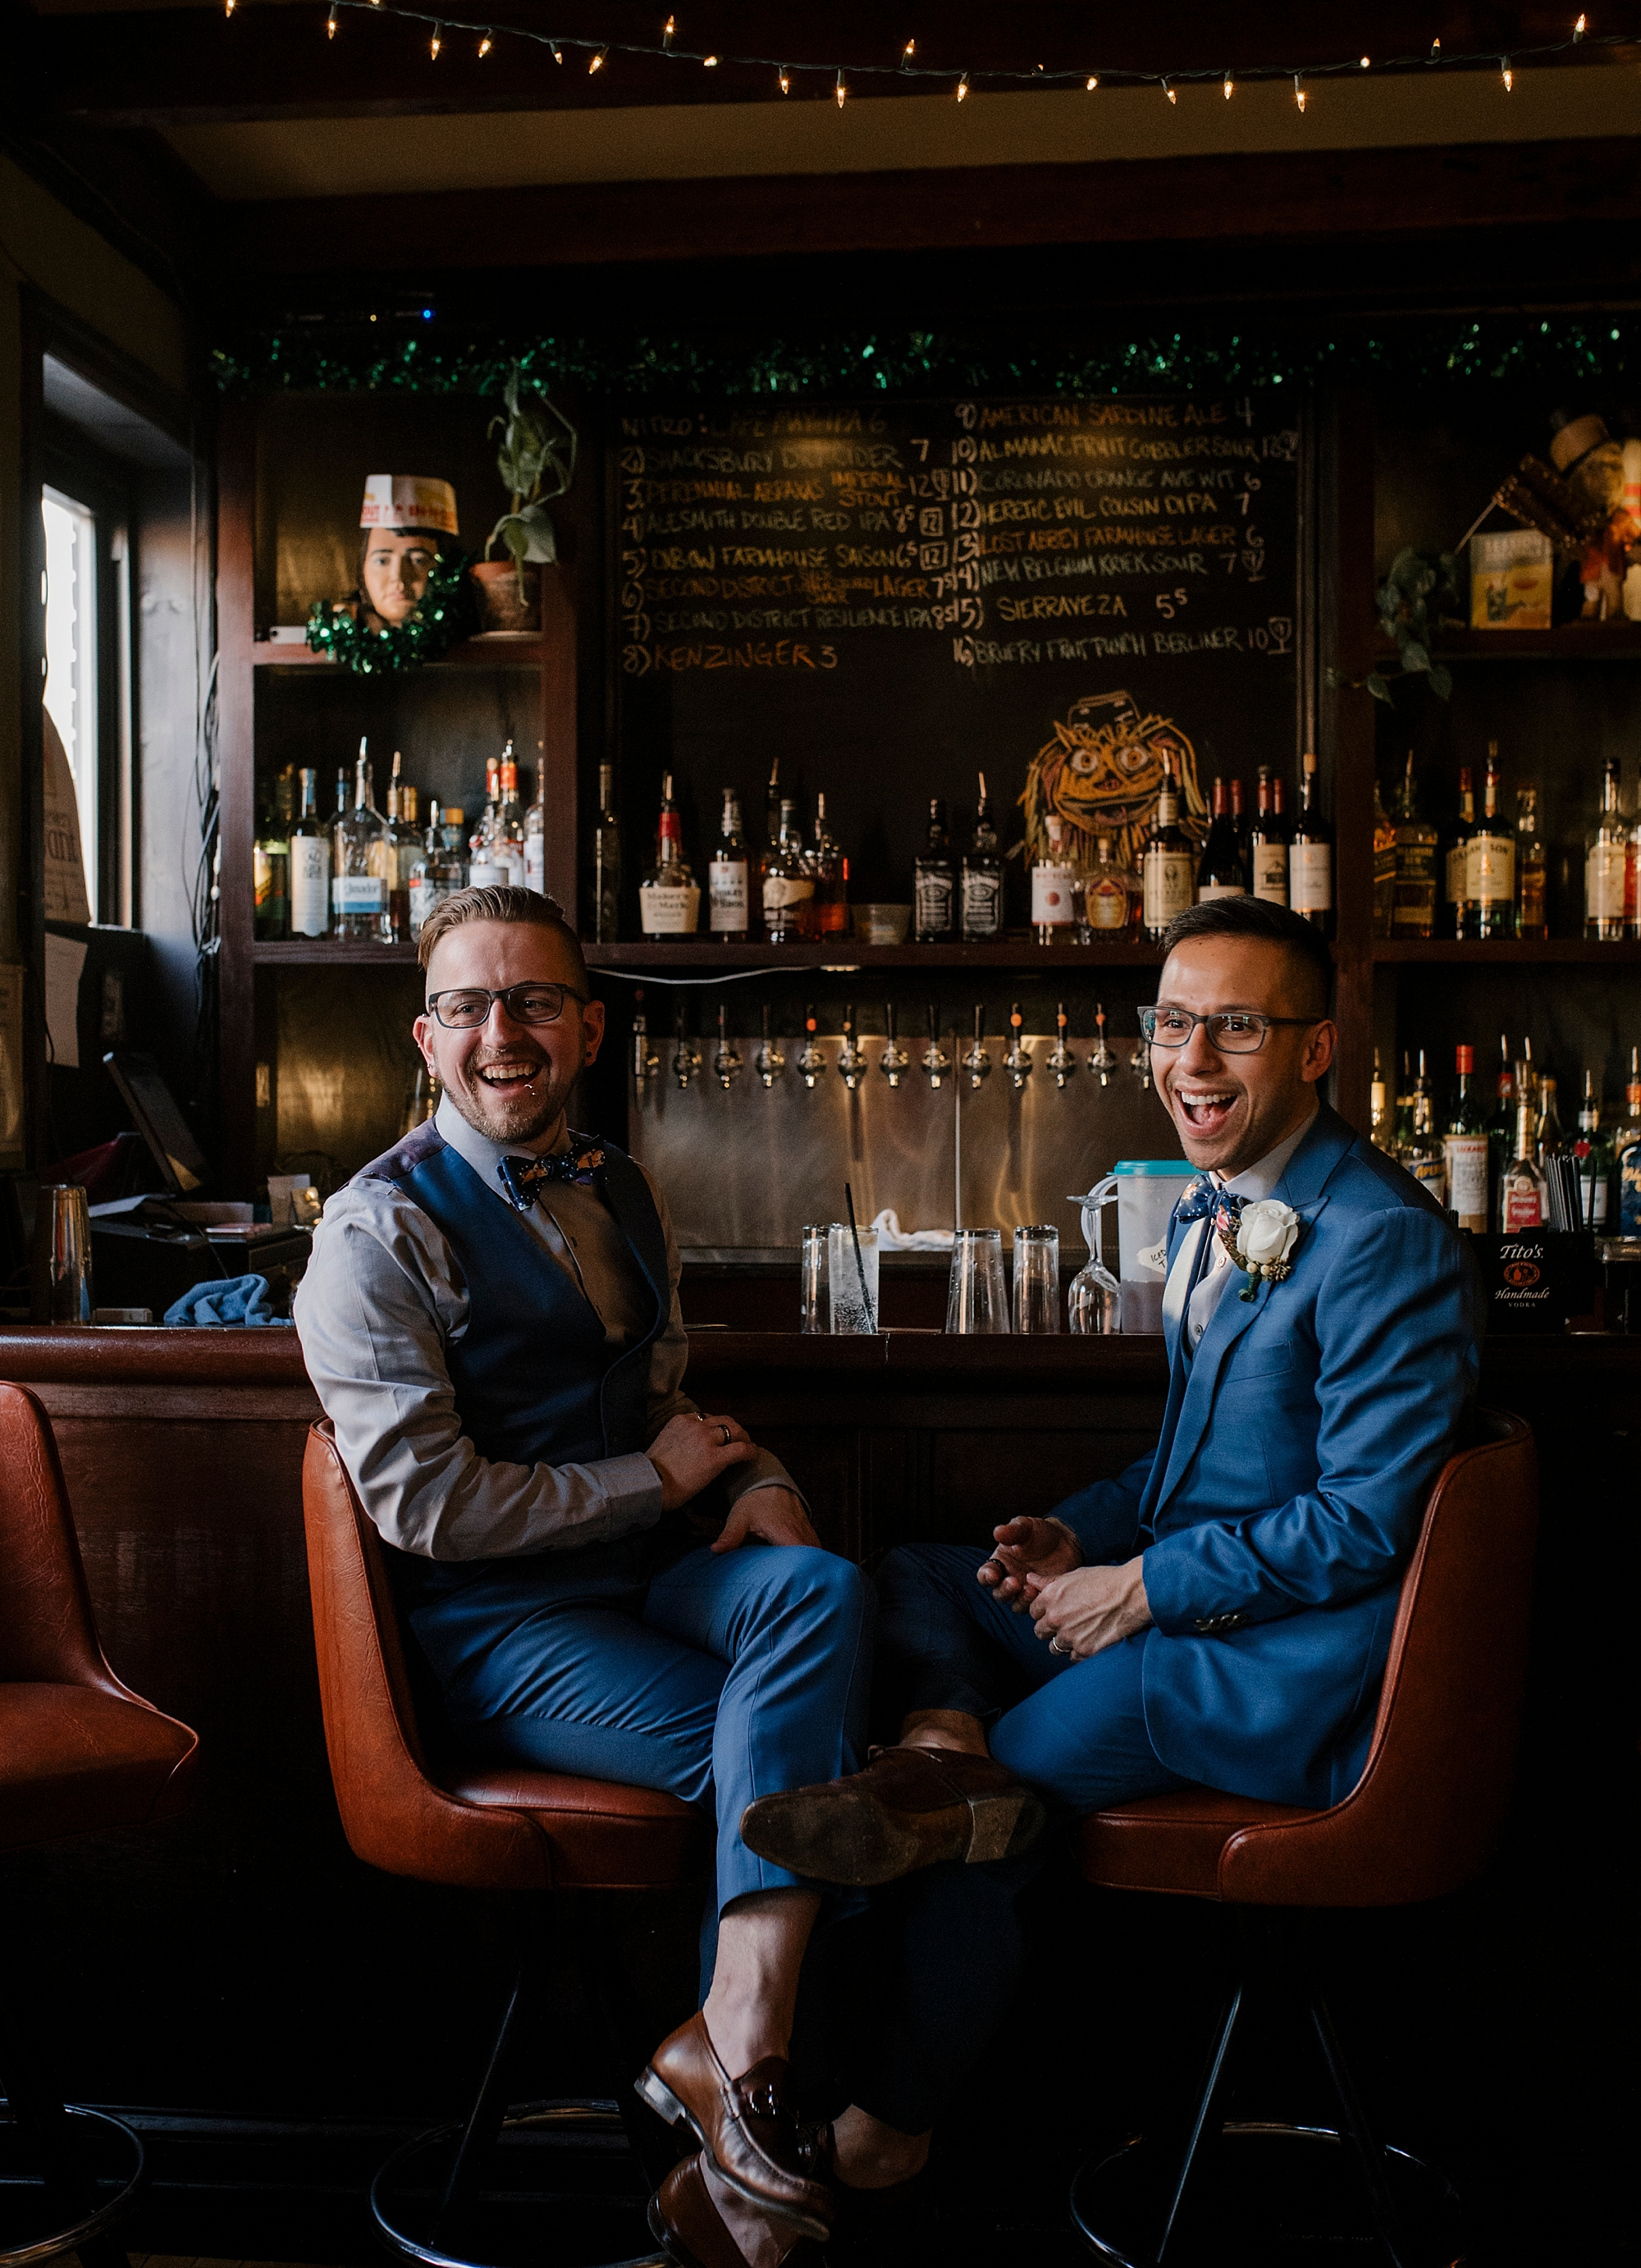 Joe_Mac_Creative_Philadelphia_Philly_LGBT_Gay_Engagement_Wedding_Photography__0141.jpg